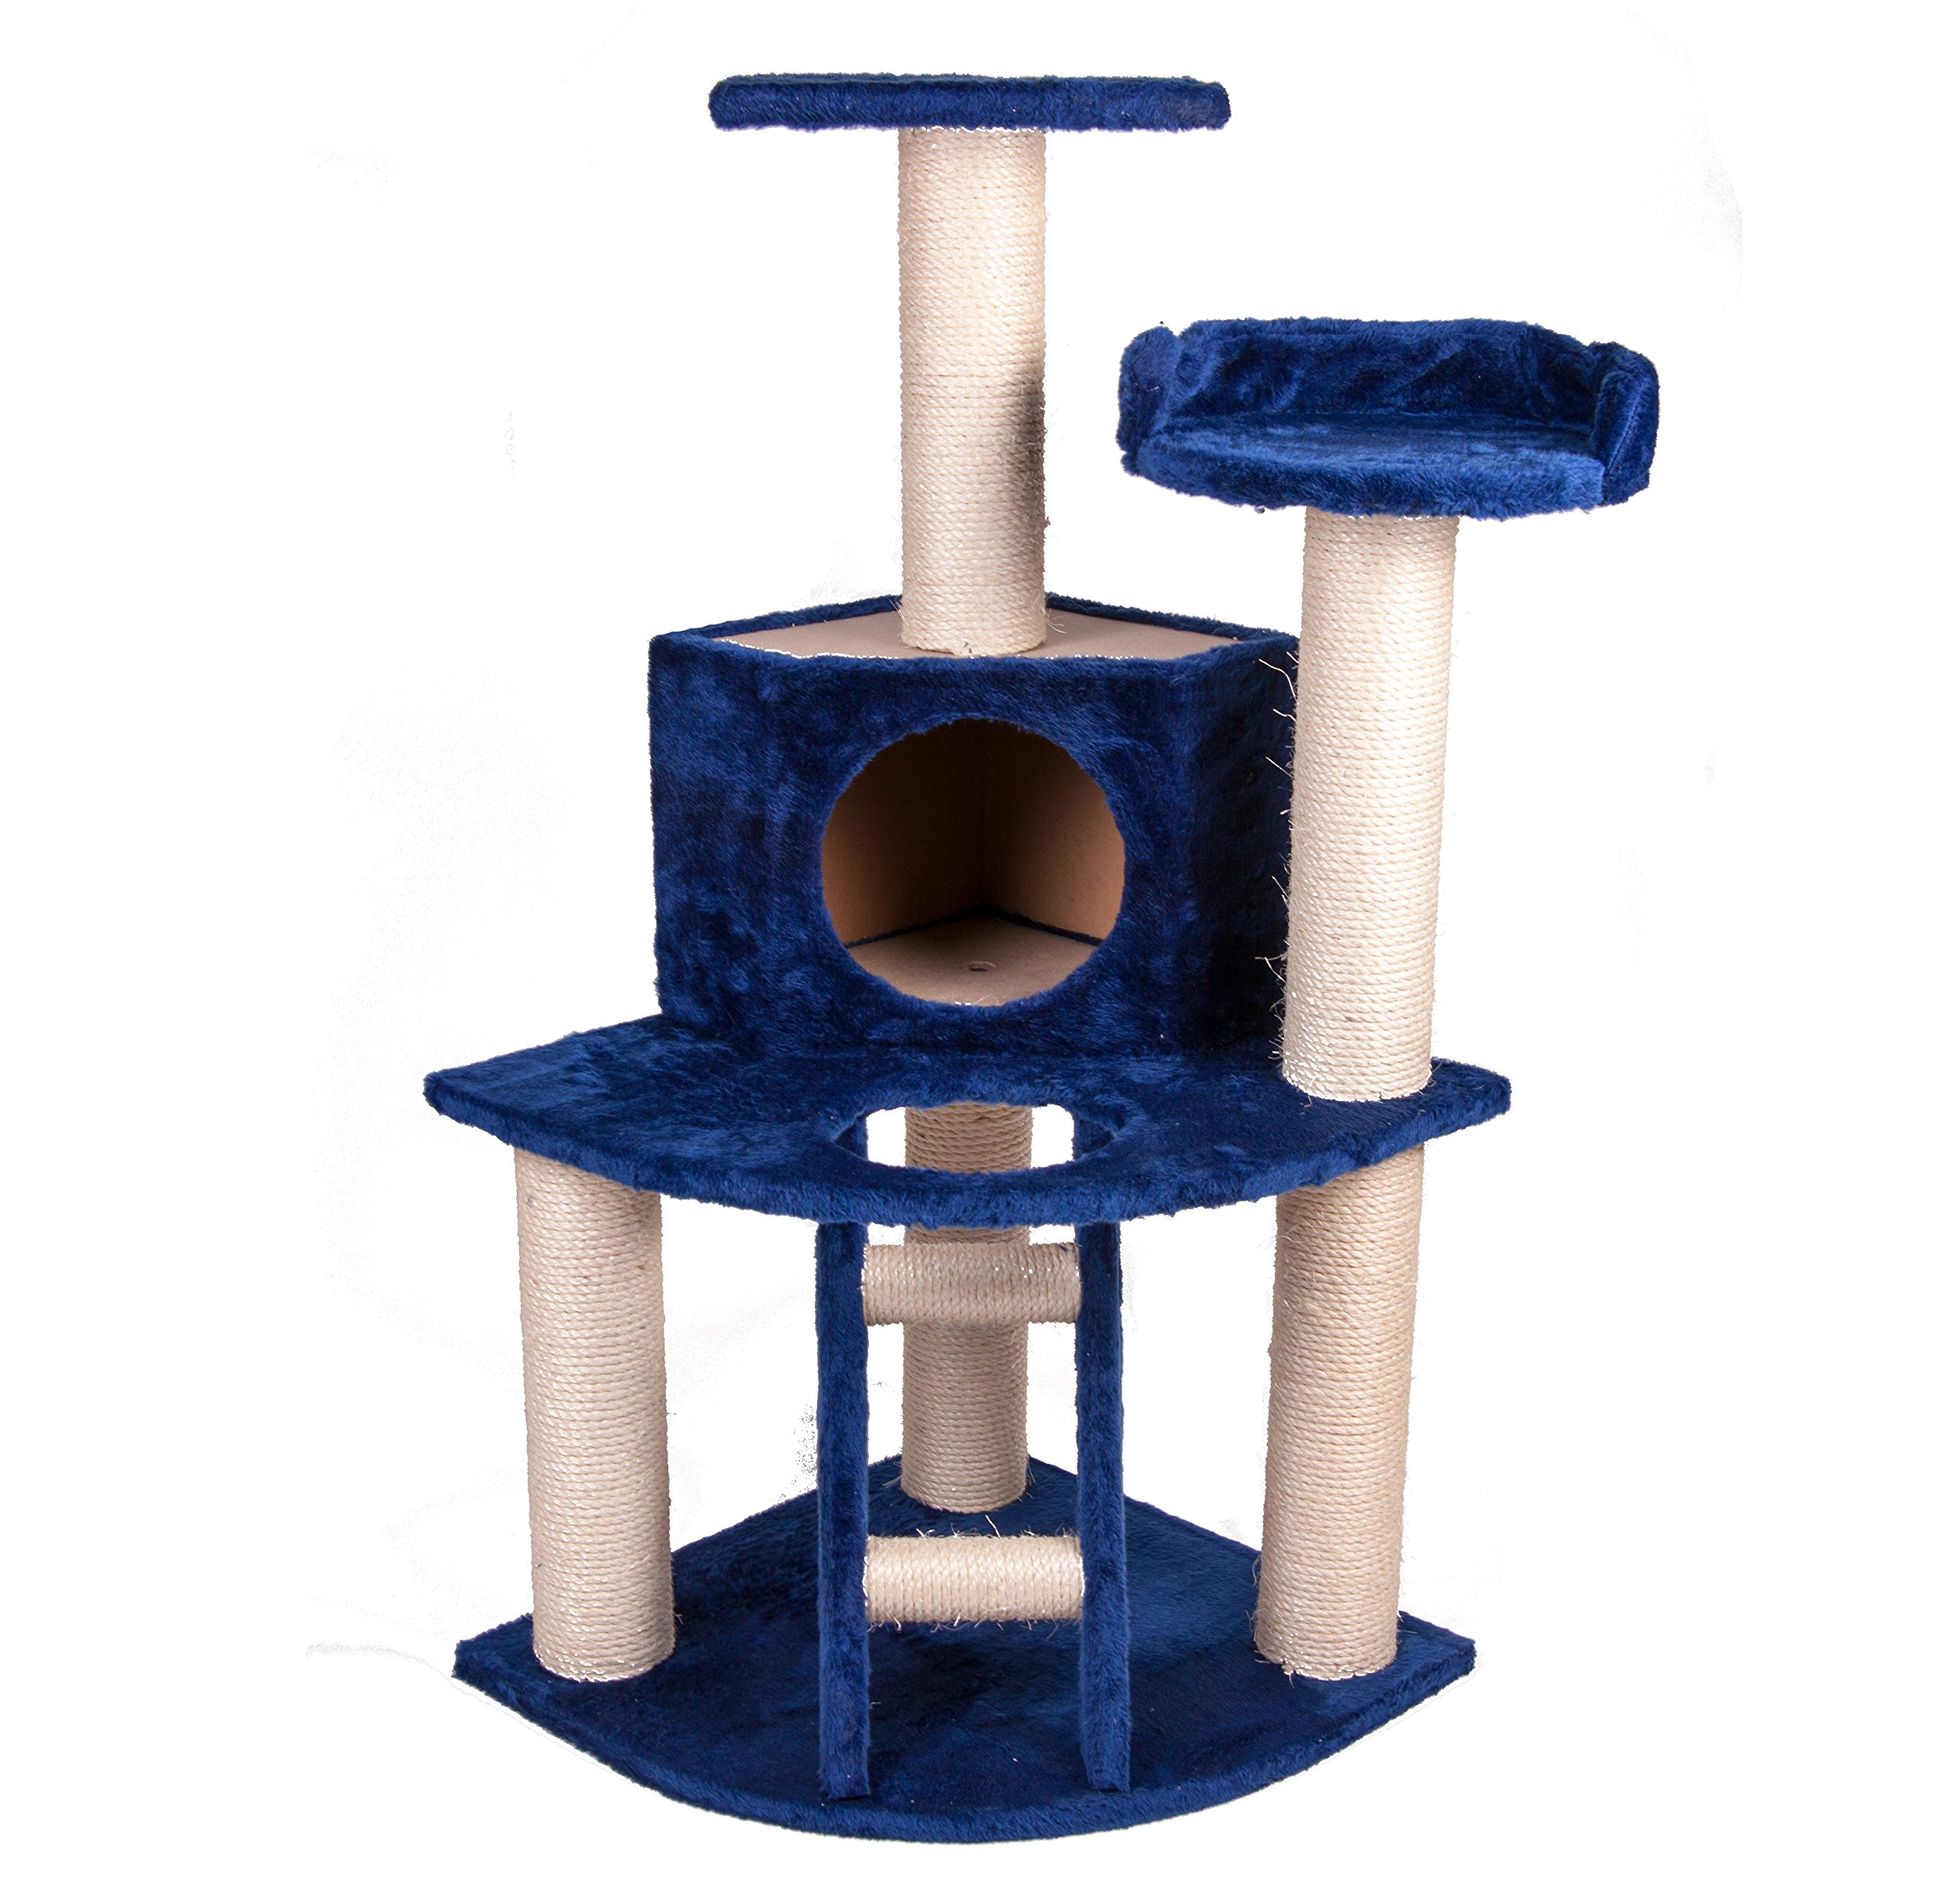 GoGo Pet Products Cat Tree House, 3.75-Inch